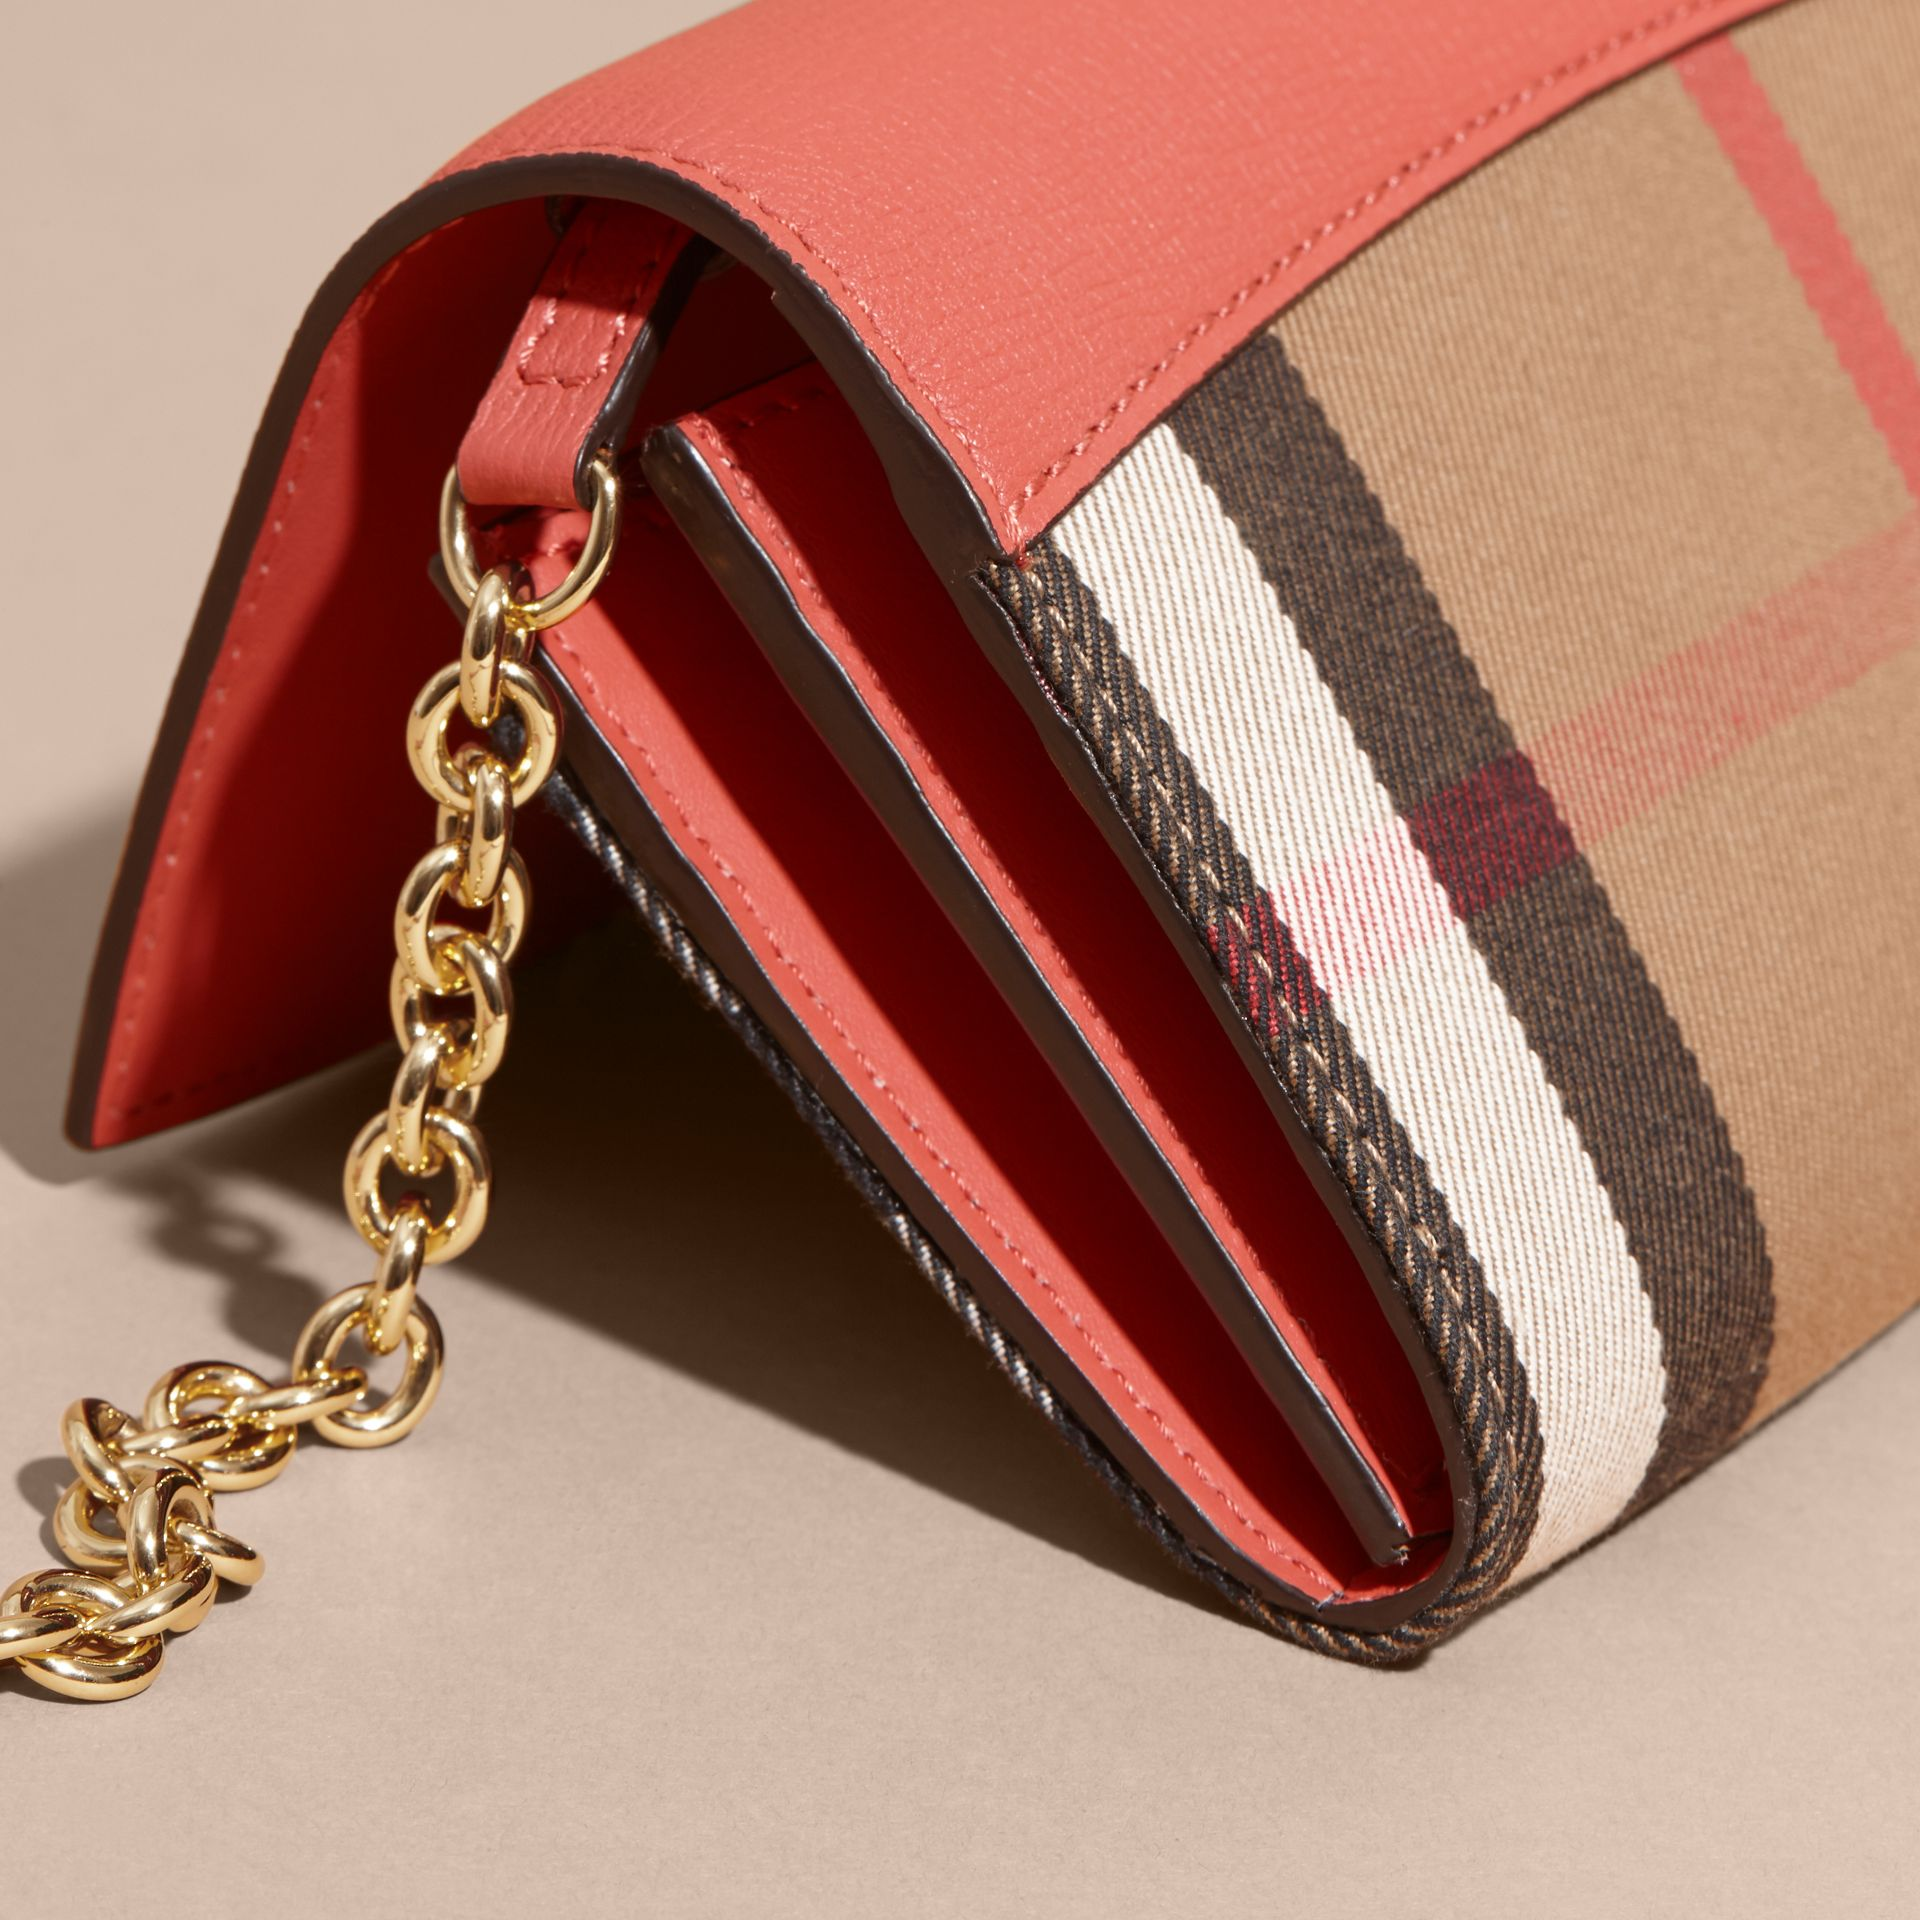 House Check and Leather Wallet with Chain in Cinnamon Red - Women | Burberry Australia - gallery image 5